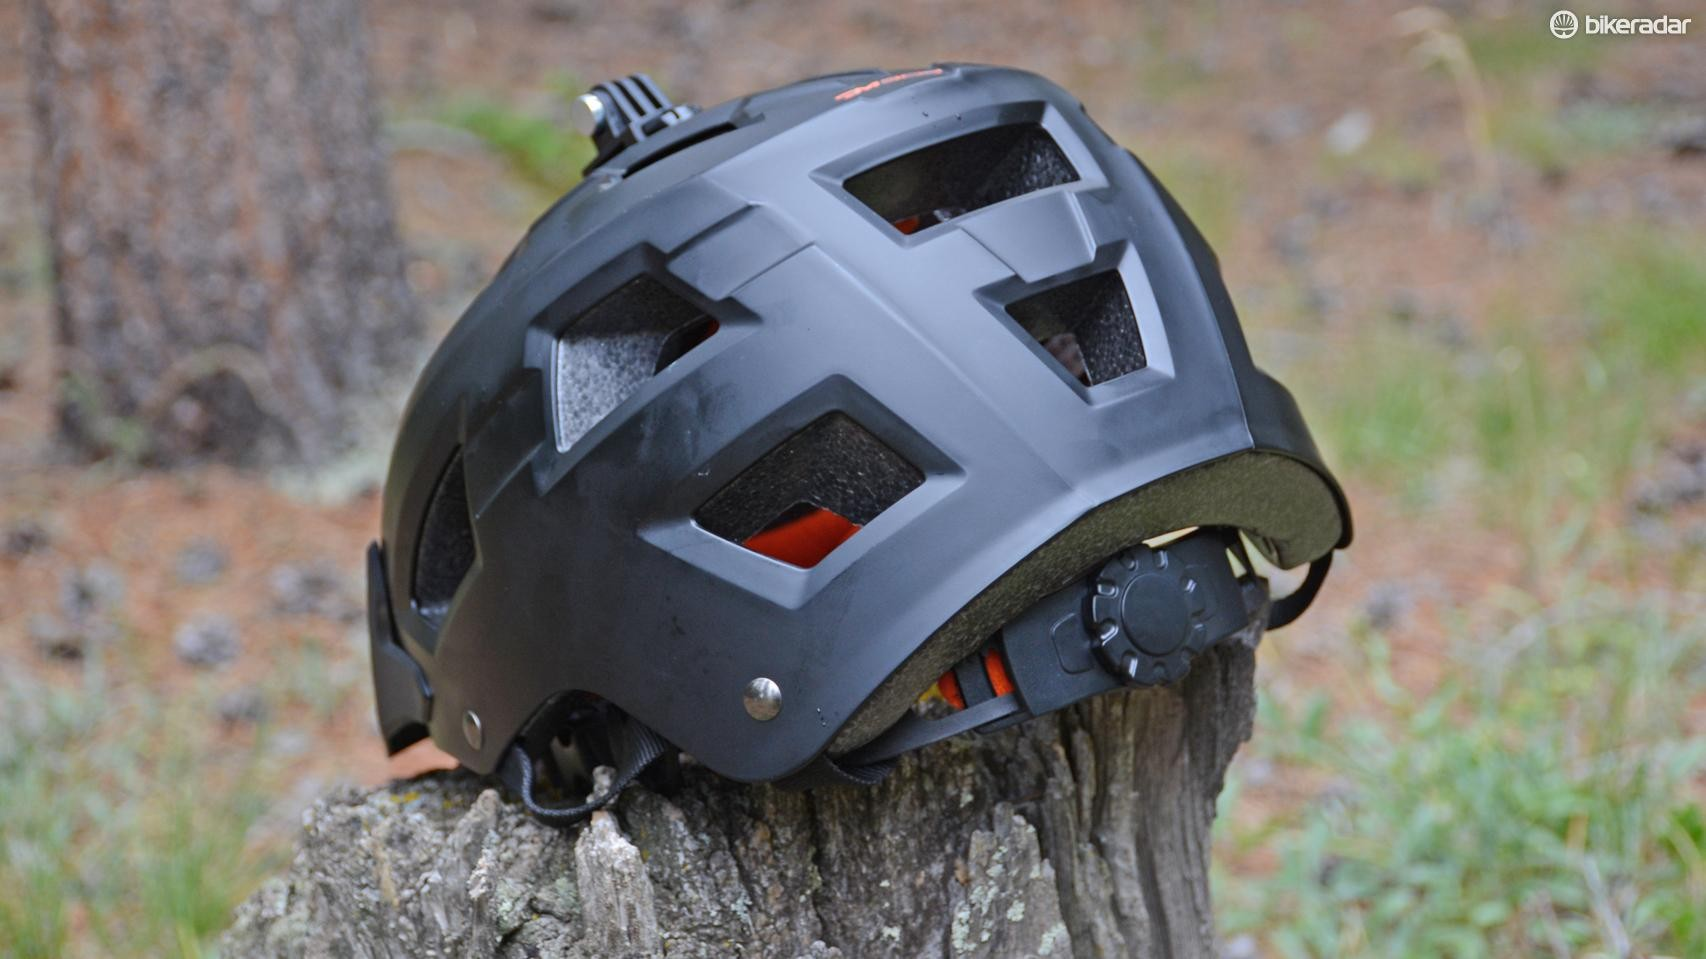 The rear of the helmet follows the extended protection trend